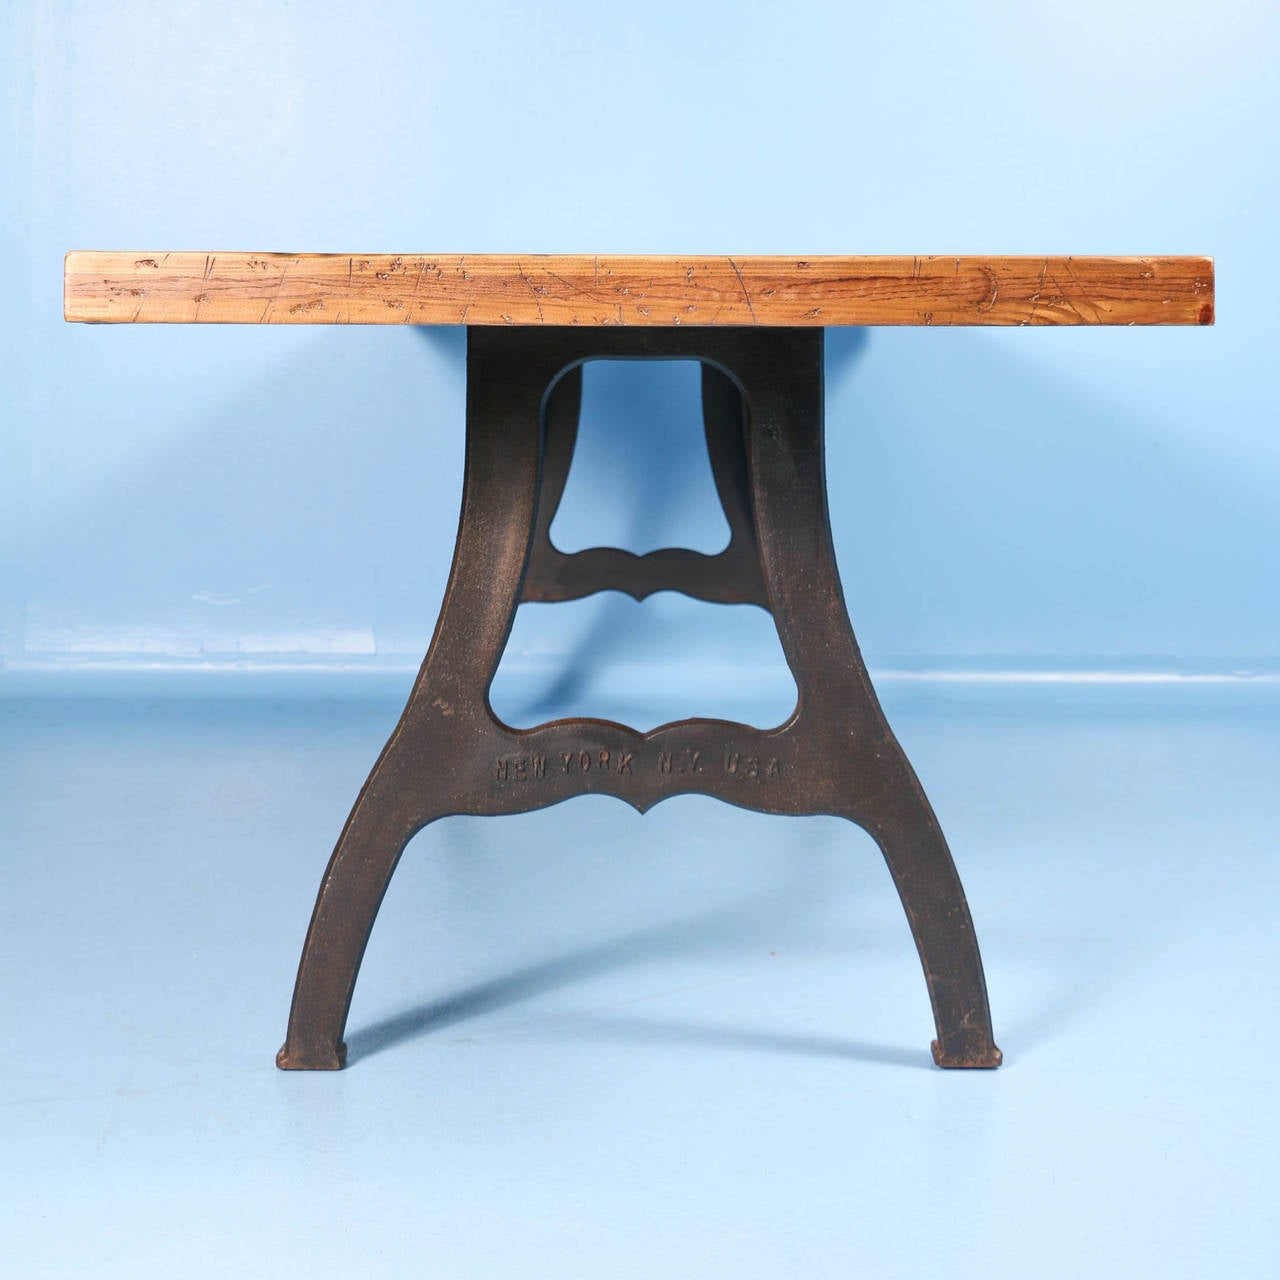 Vintage Industrial Look Dining Table from Reclaimed Wood  : IMG6547l from www.1stdibs.com size 1280 x 1280 jpeg 86kB